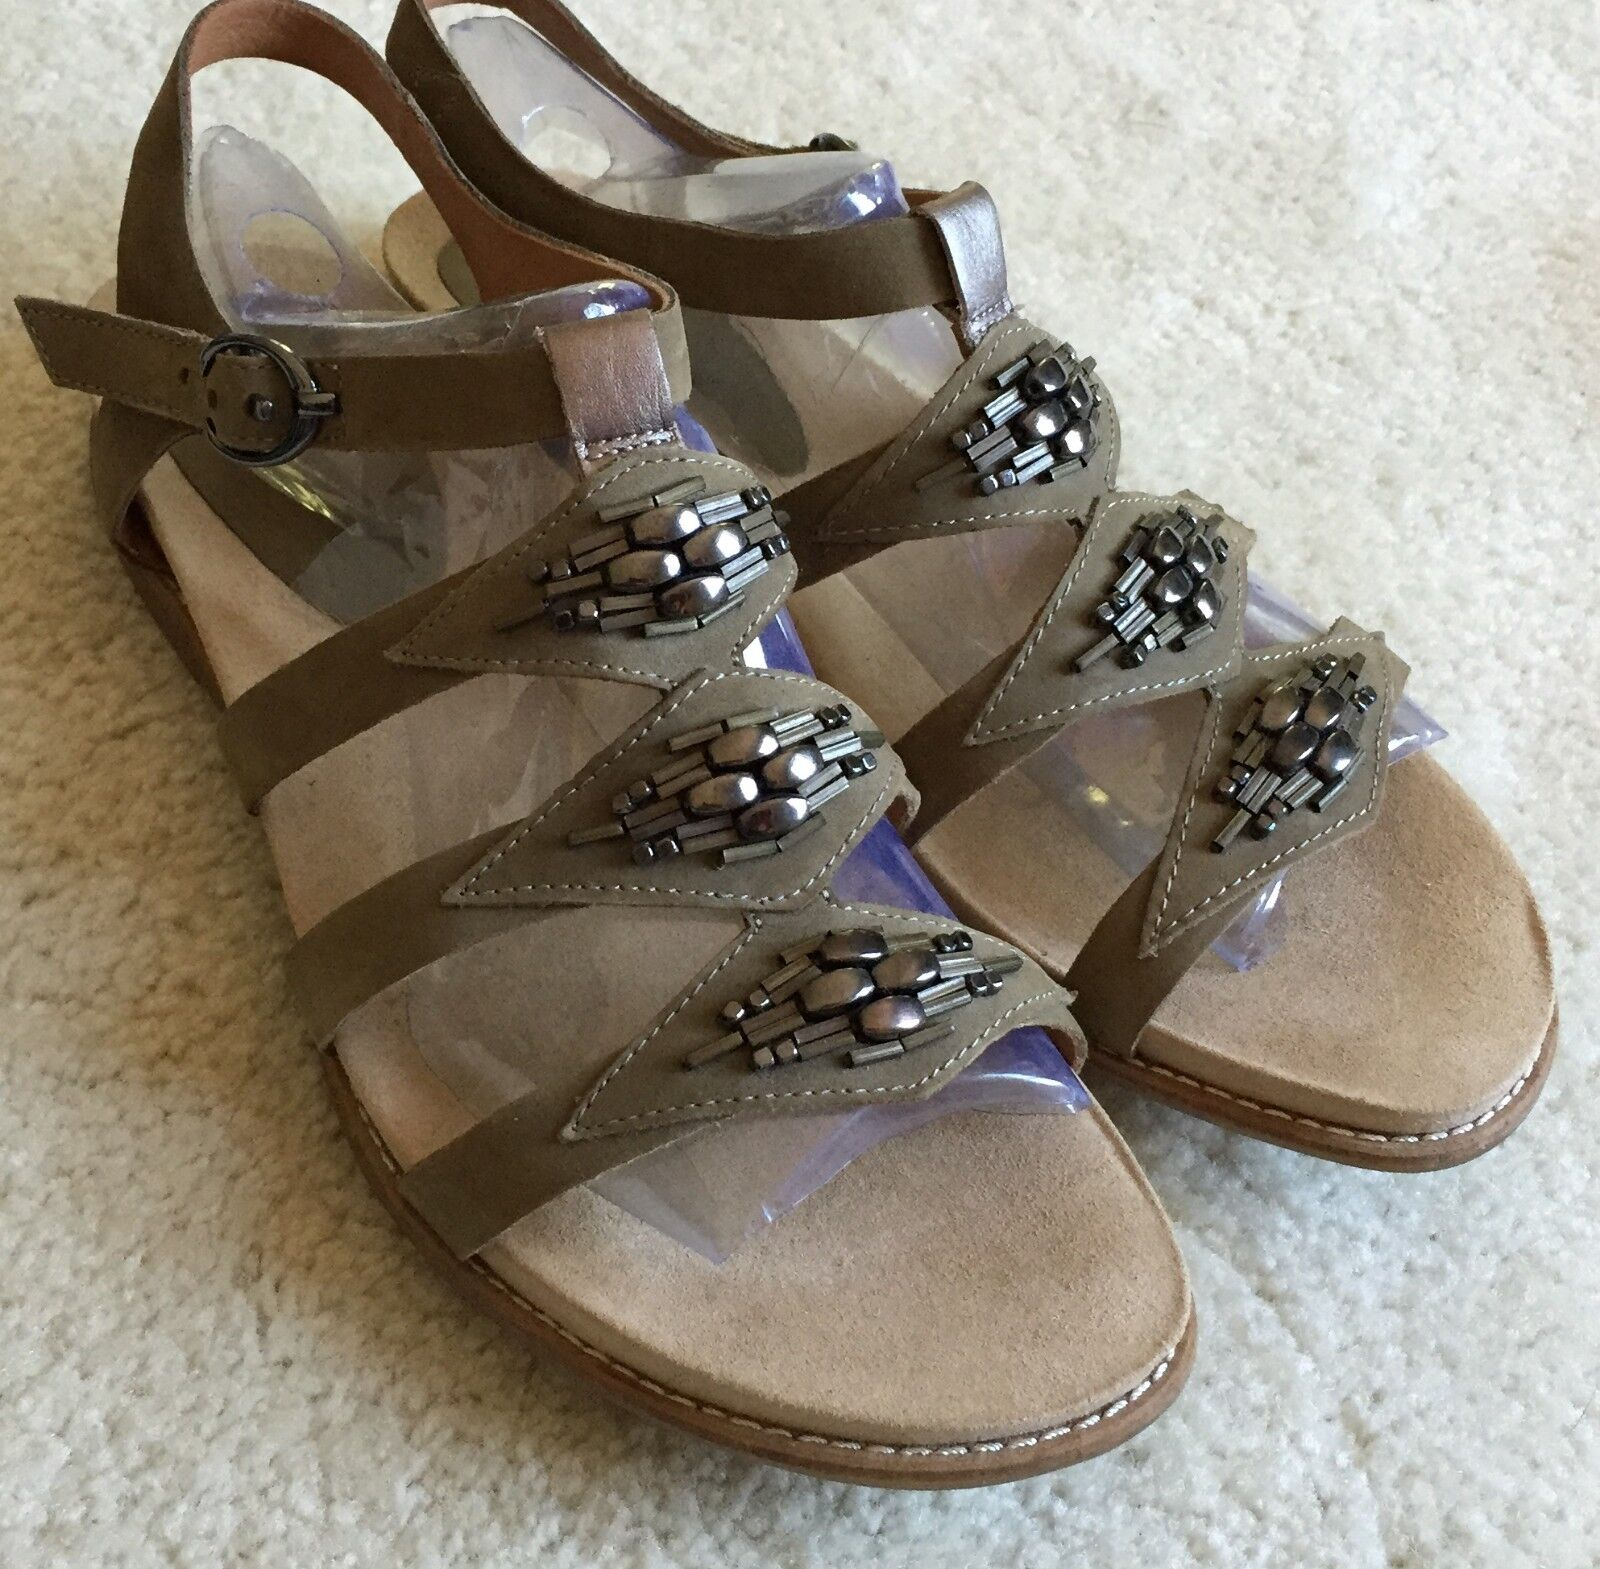 Women's Earthies Bello Olive Leather Flat Sandals  11 M  New   149